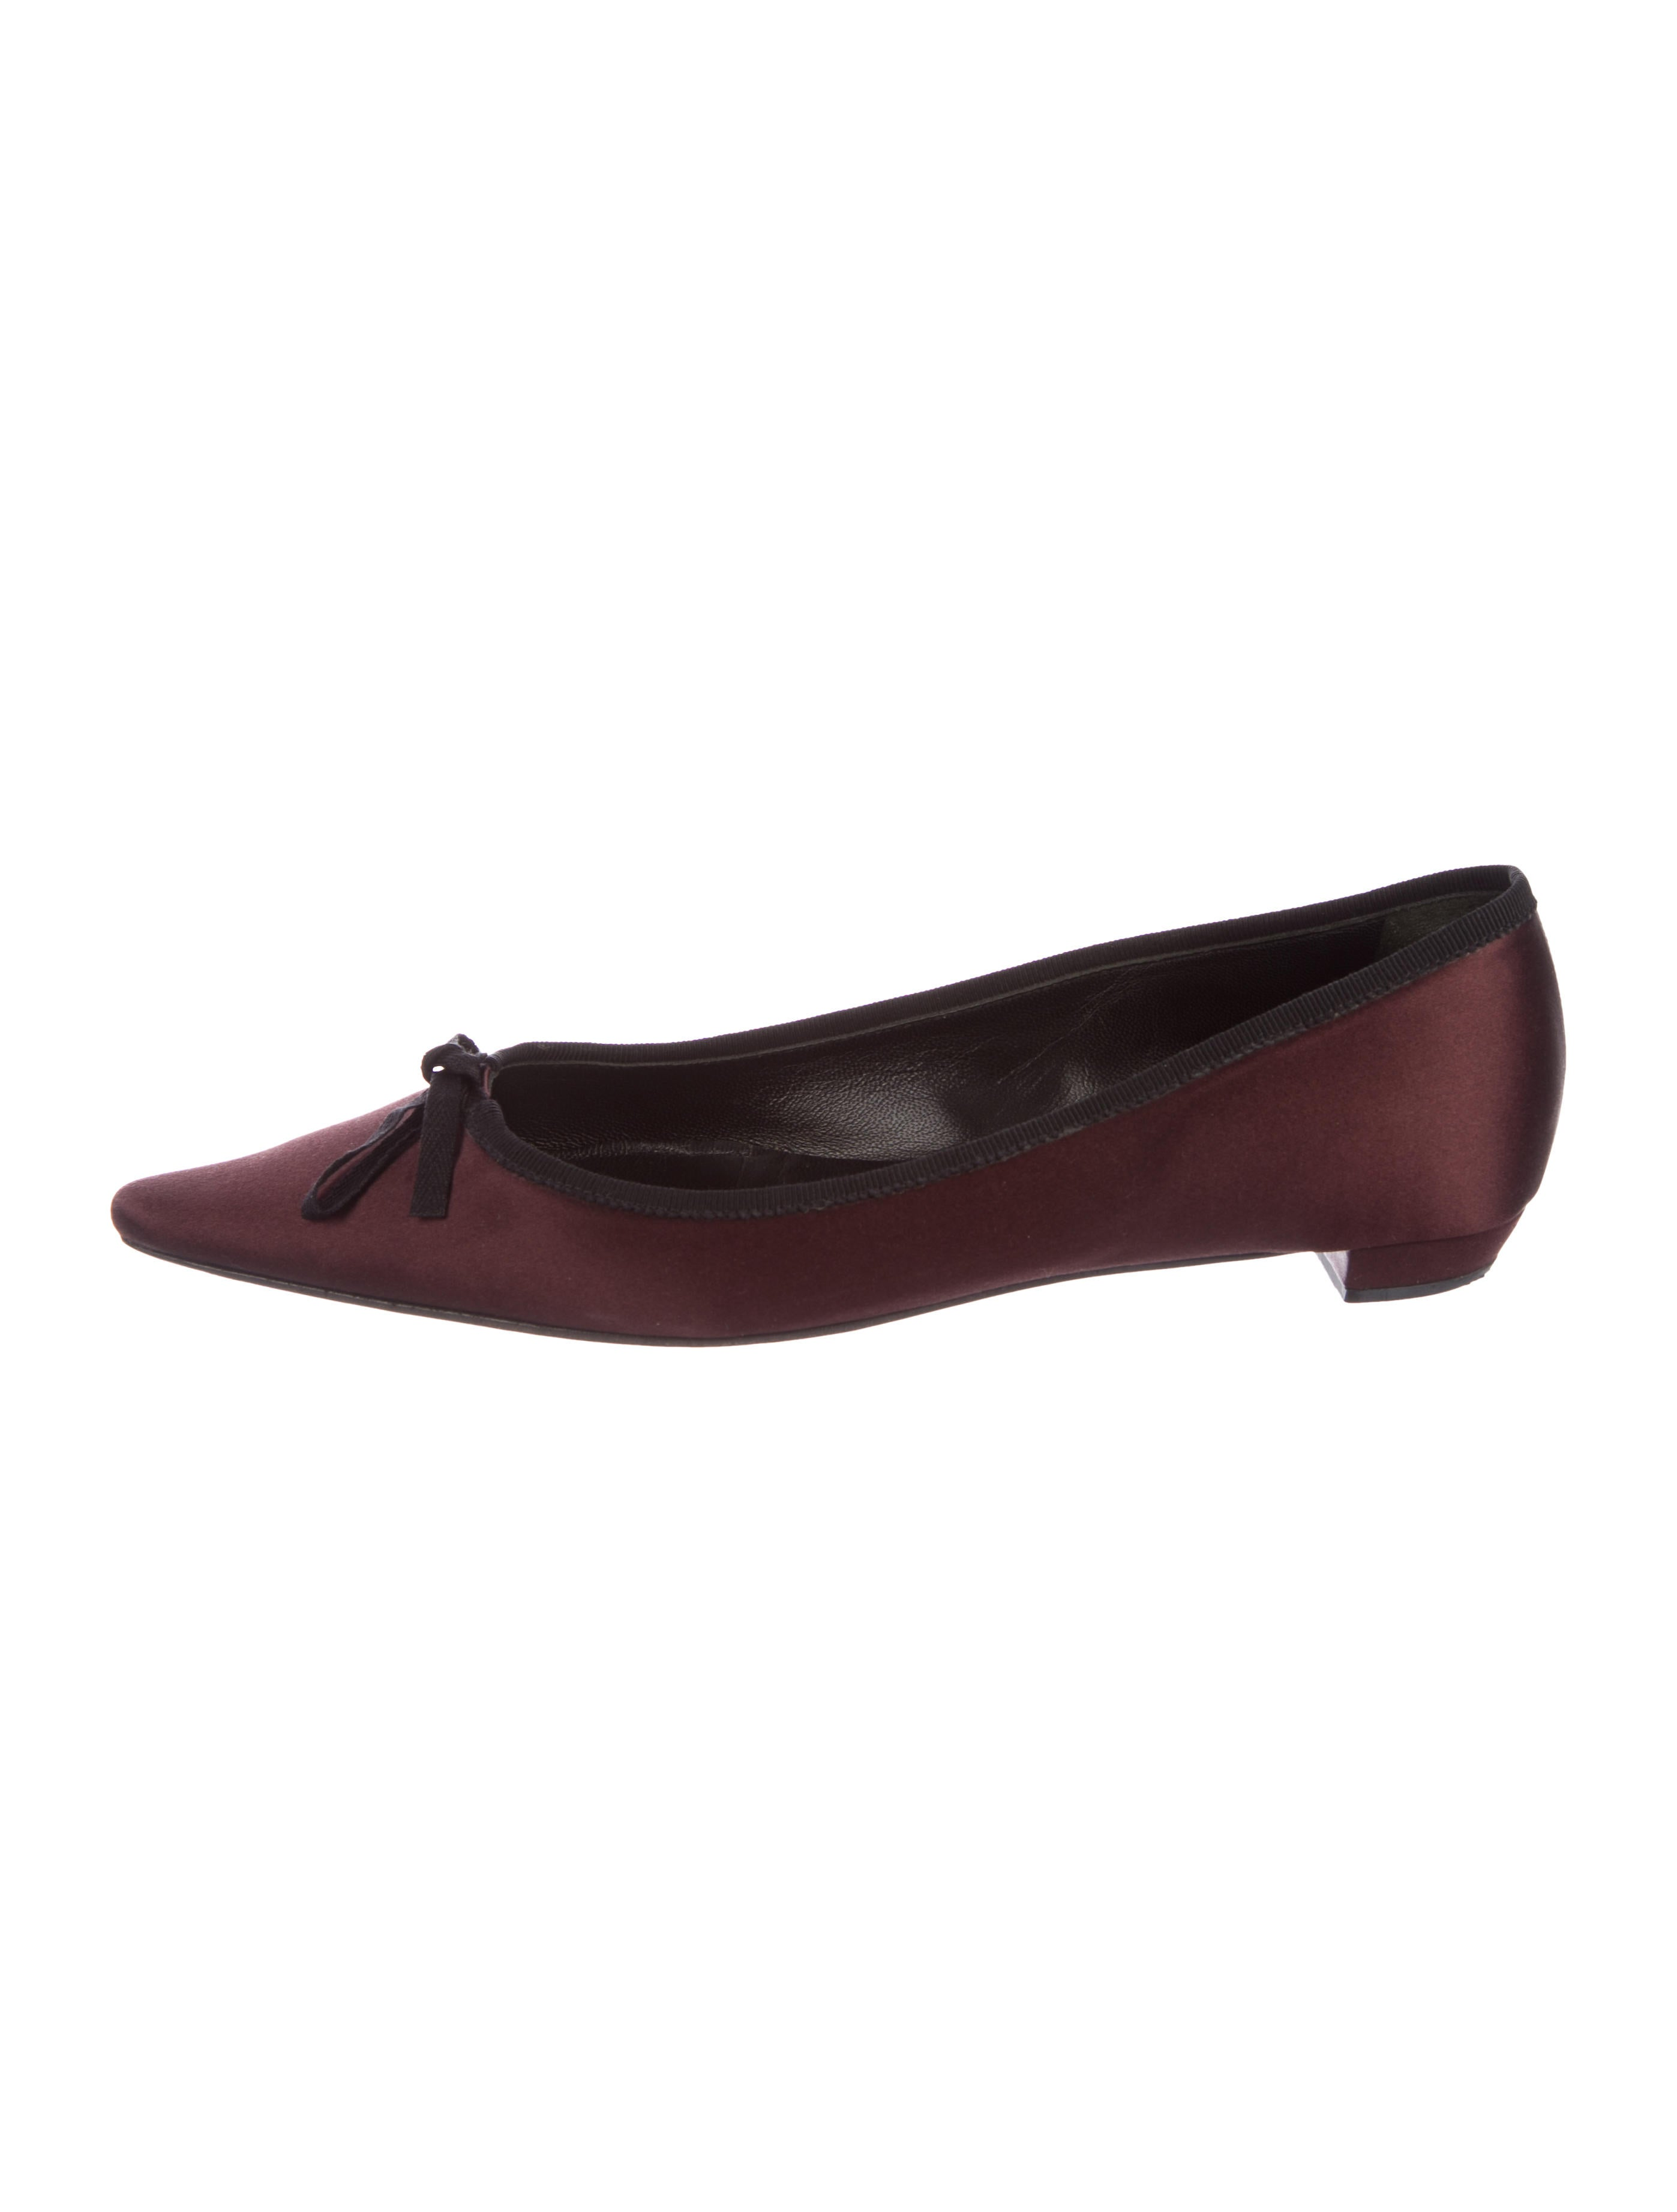 2014 newest cheap online buy cheap 100% guaranteed Prada Satin Pointed-Toe Flats footlocker finishline cheap online sale reliable EKnia